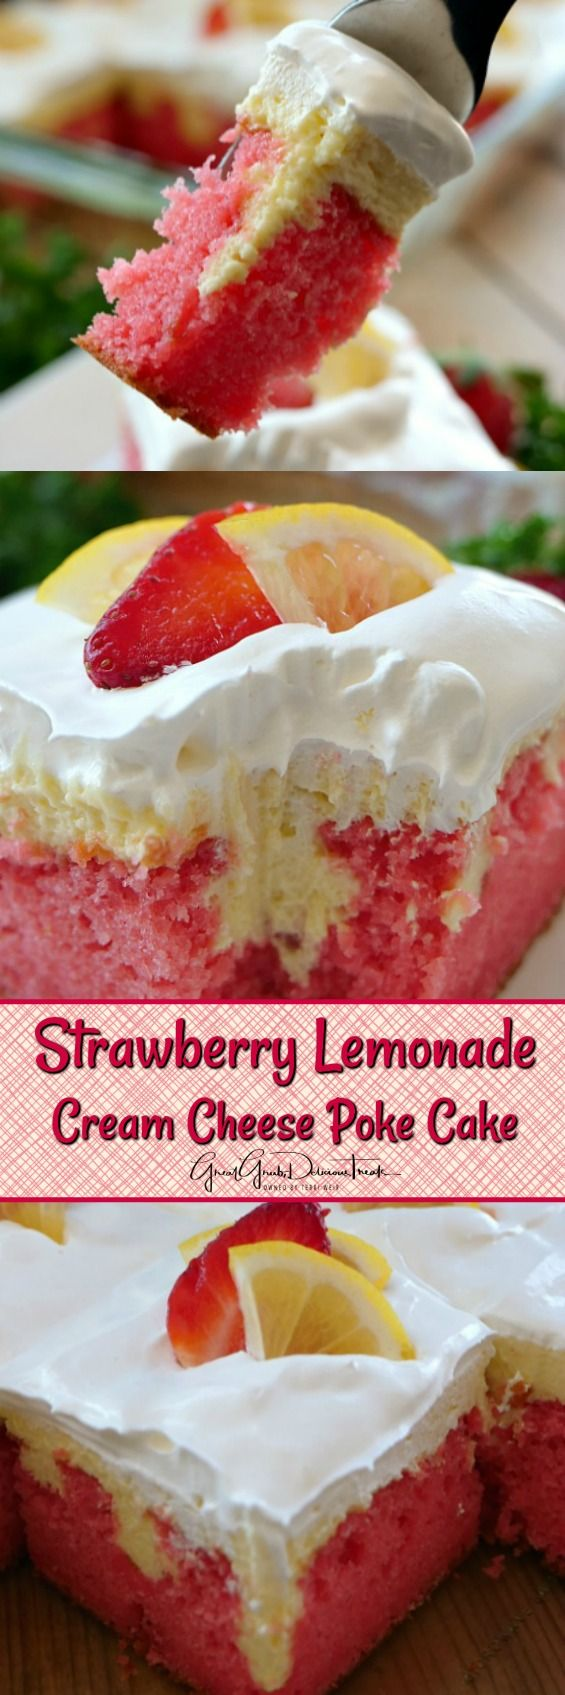 Strawberry Lemonade Cream Cheese Poke Cake ~ Super delicious and perfect on a hot summer day.